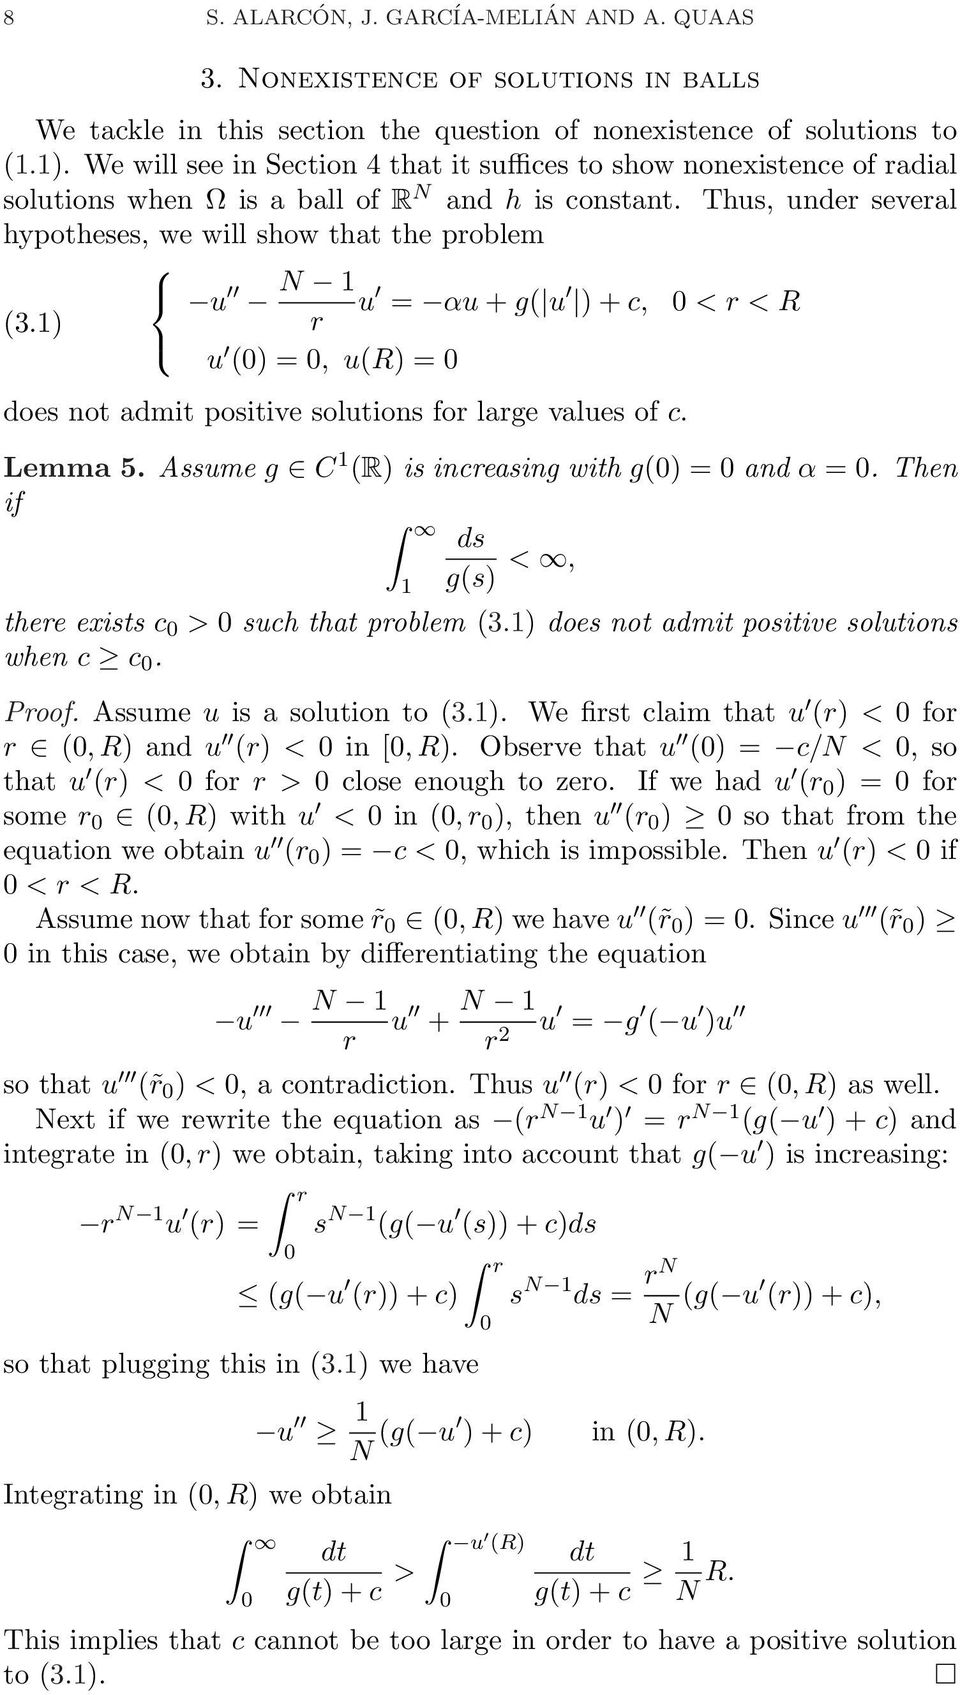 Thu, under everal hypothee, we will how that the problem u N u = αu + g( u ) + c, < r < R (3.) r u () =, u(r) = doe not admit poitive olution for large value of c. Lemma 5.